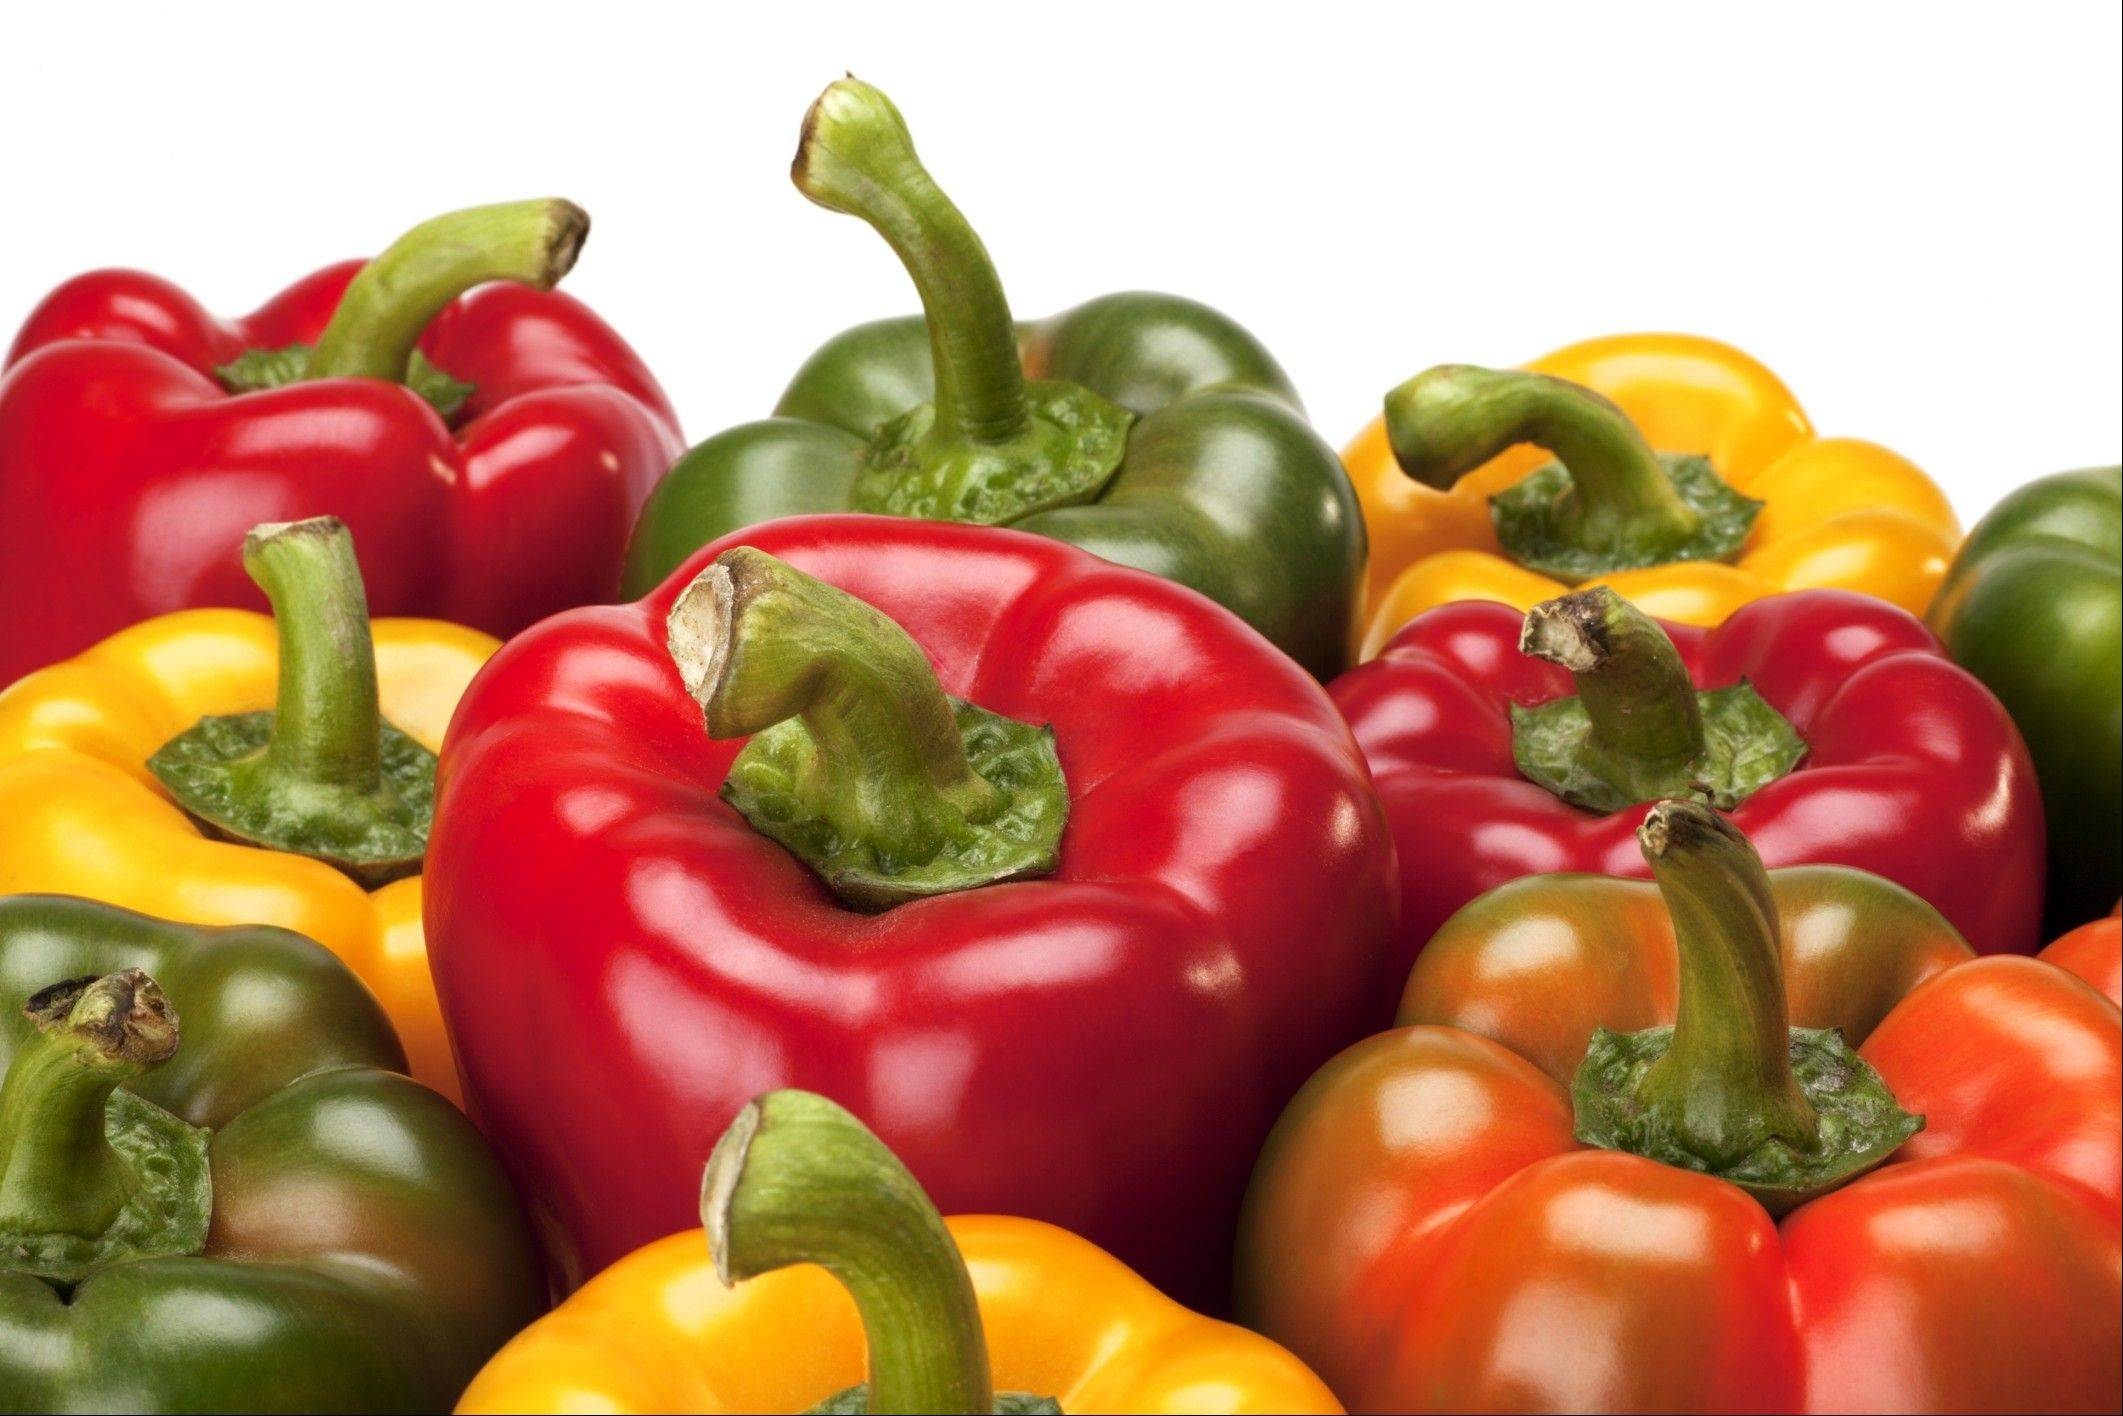 Peppers, which are rich in antioxidants, make great summer snacks.